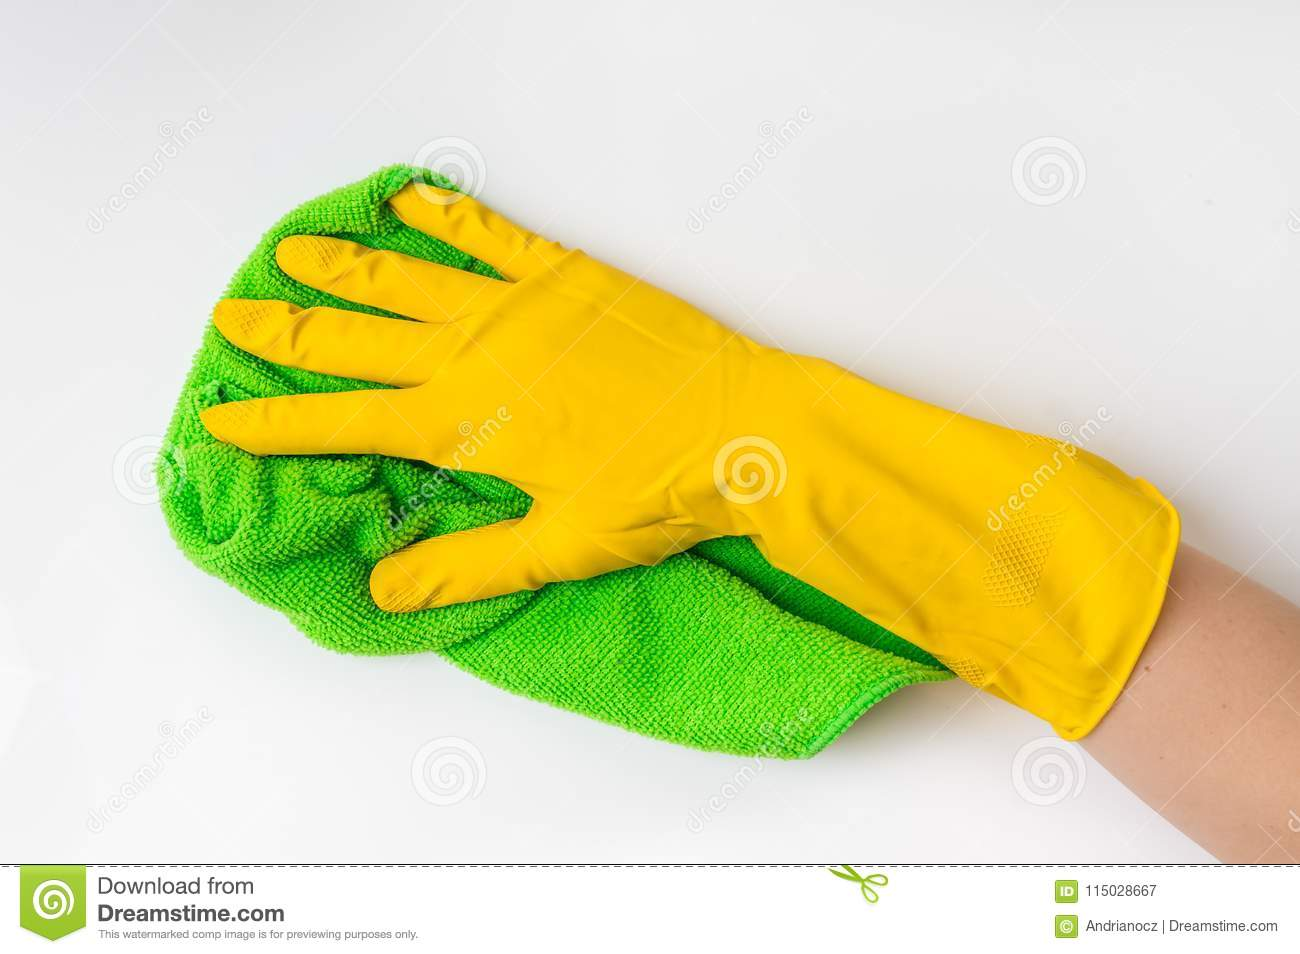 156e73fe83b6c Hand in glove with green rag is wiping white door in kitchen - housework  and housekeeping concept